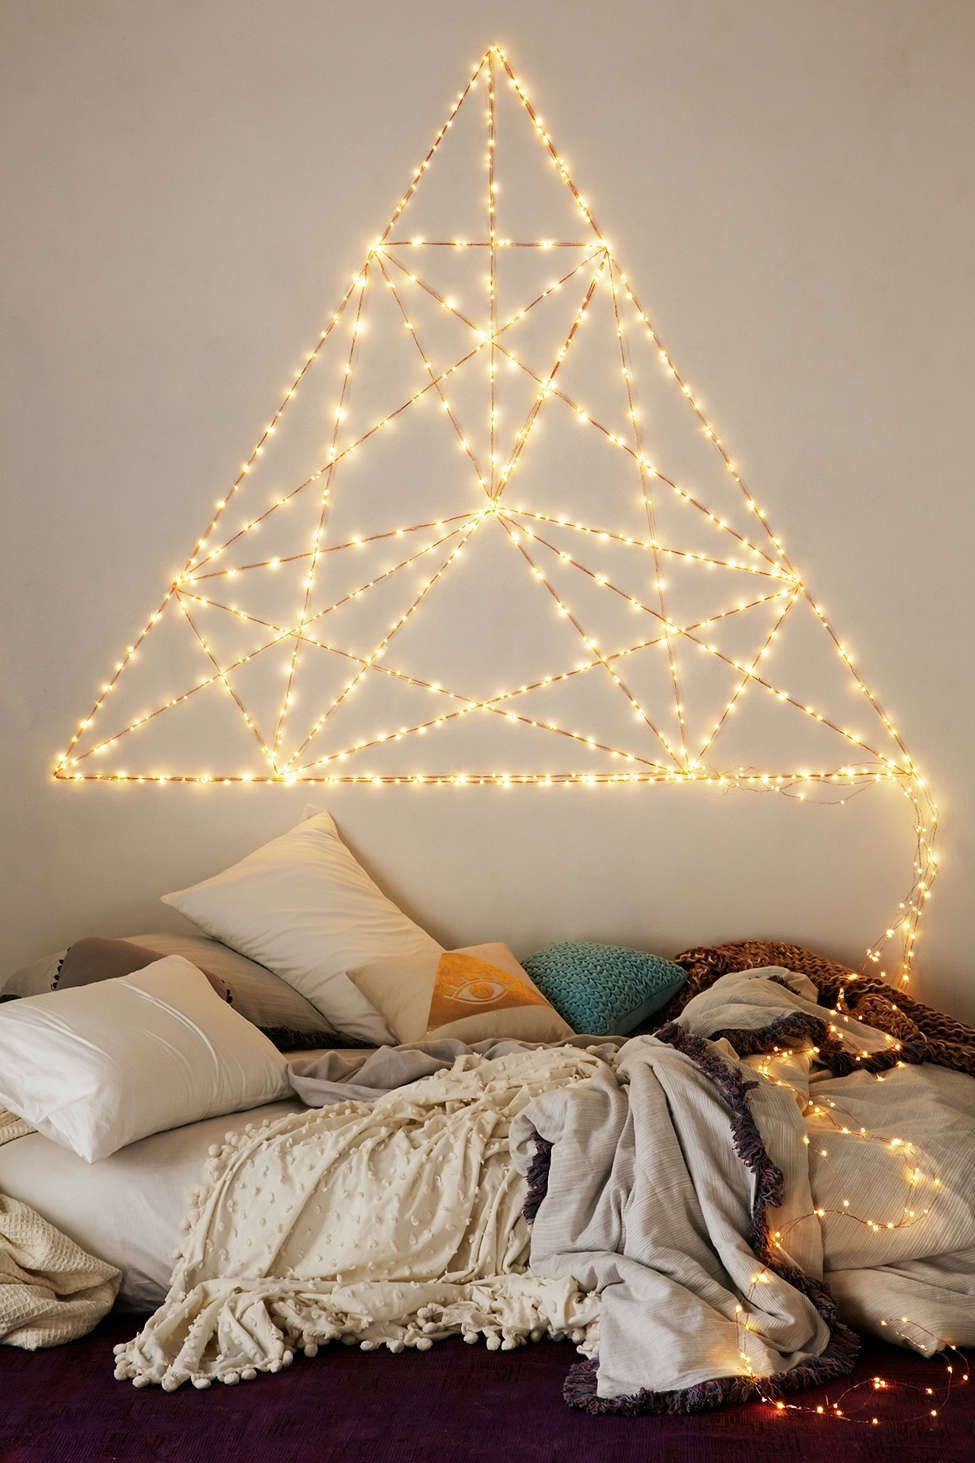 Firefly String Lights Endearing 45 Inspiring Ways To Decorate Your Home With String Lights Inspiration